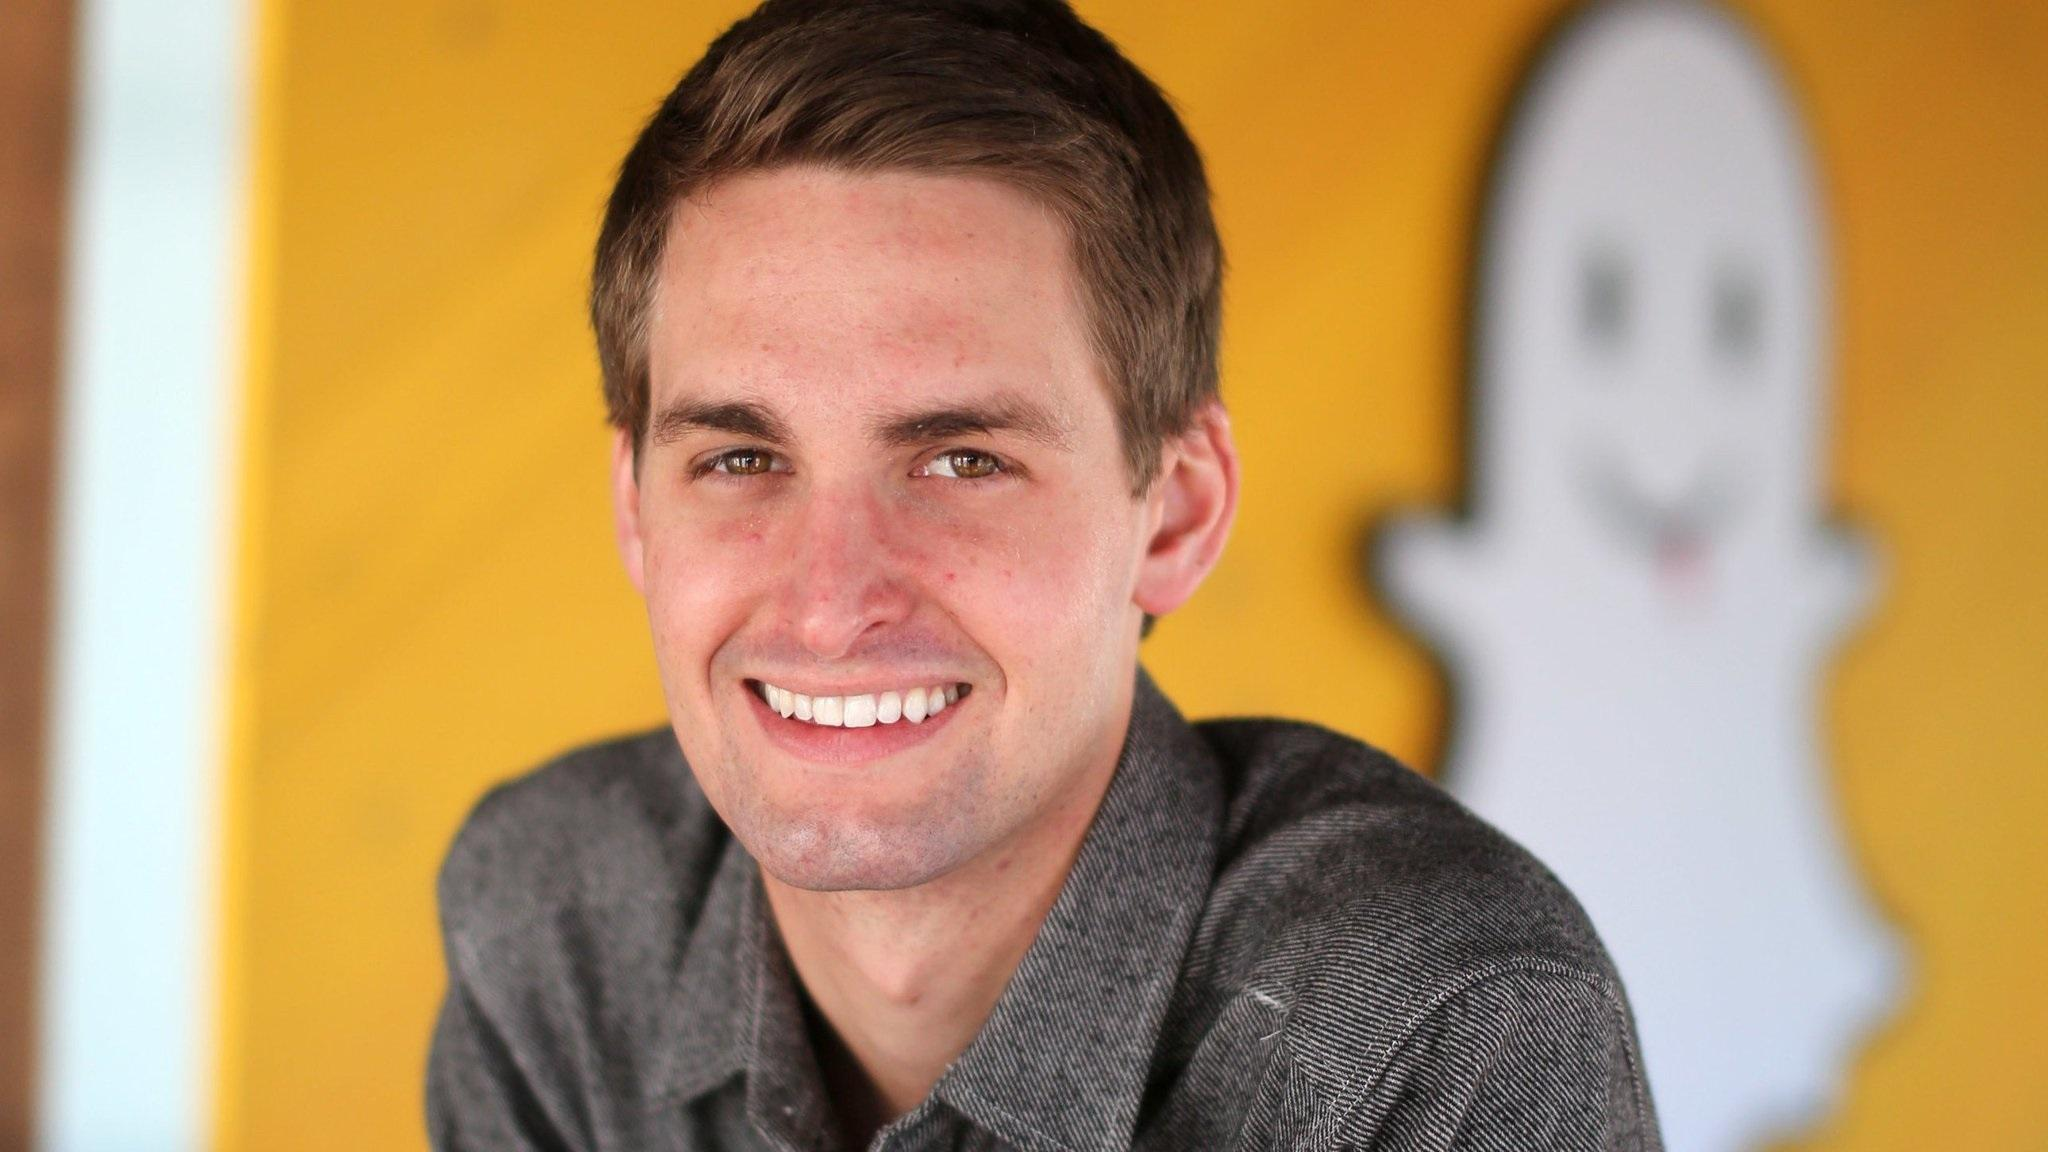 Snapchat's much-hated redesign scared advertisers and